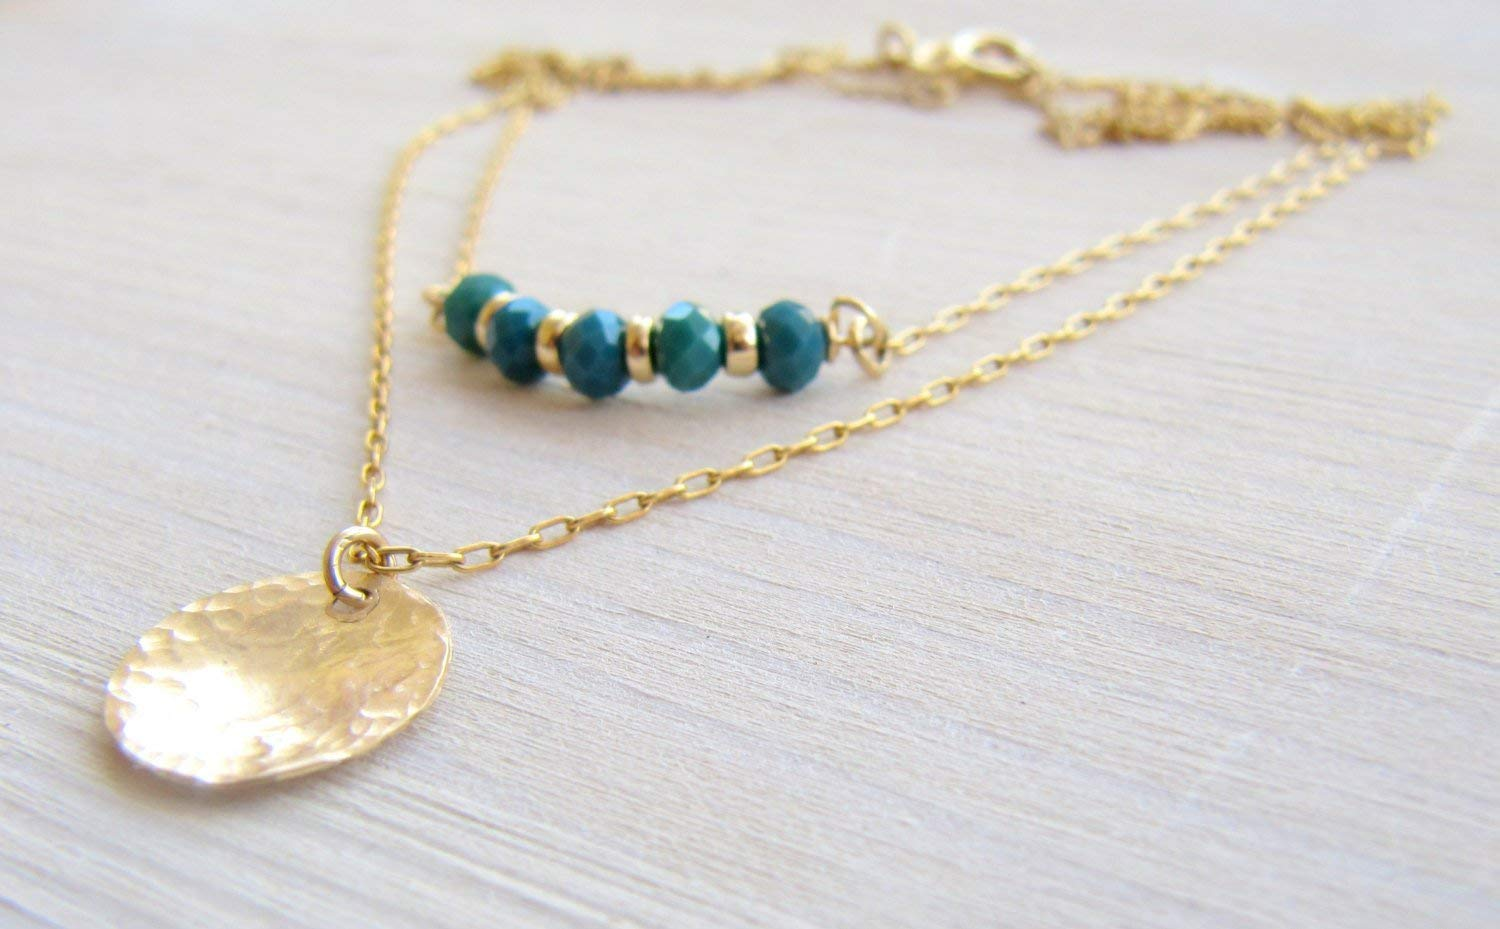 Boho Gold Filled Set Of Two Necklaces - A Green Crystal Beads Bar Necklace And A Disc Layered Necklaces - Artisan Dainty Handmade Jewelry